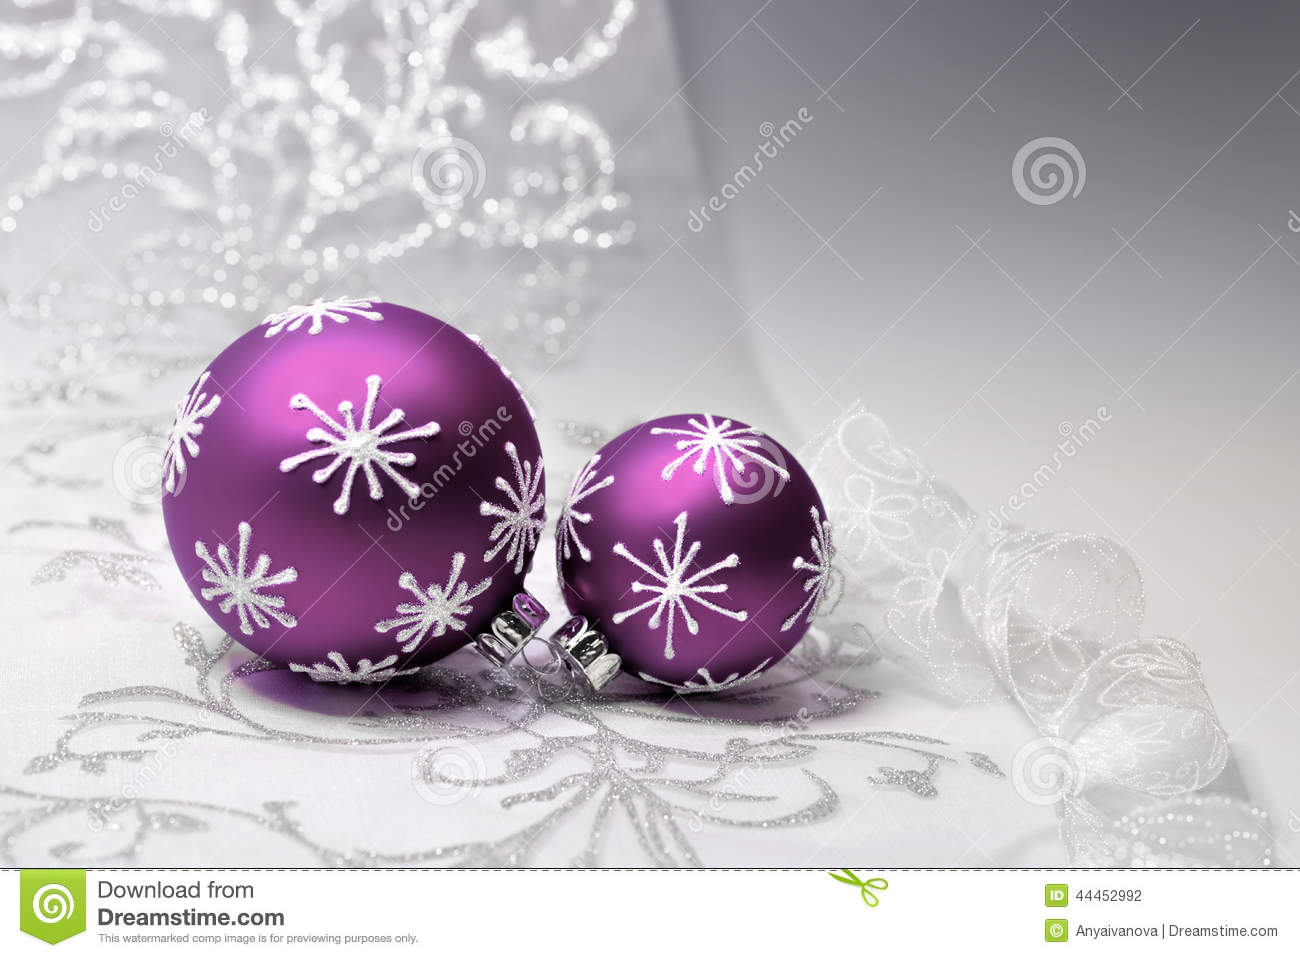 purple christmas decorations with silver ornament